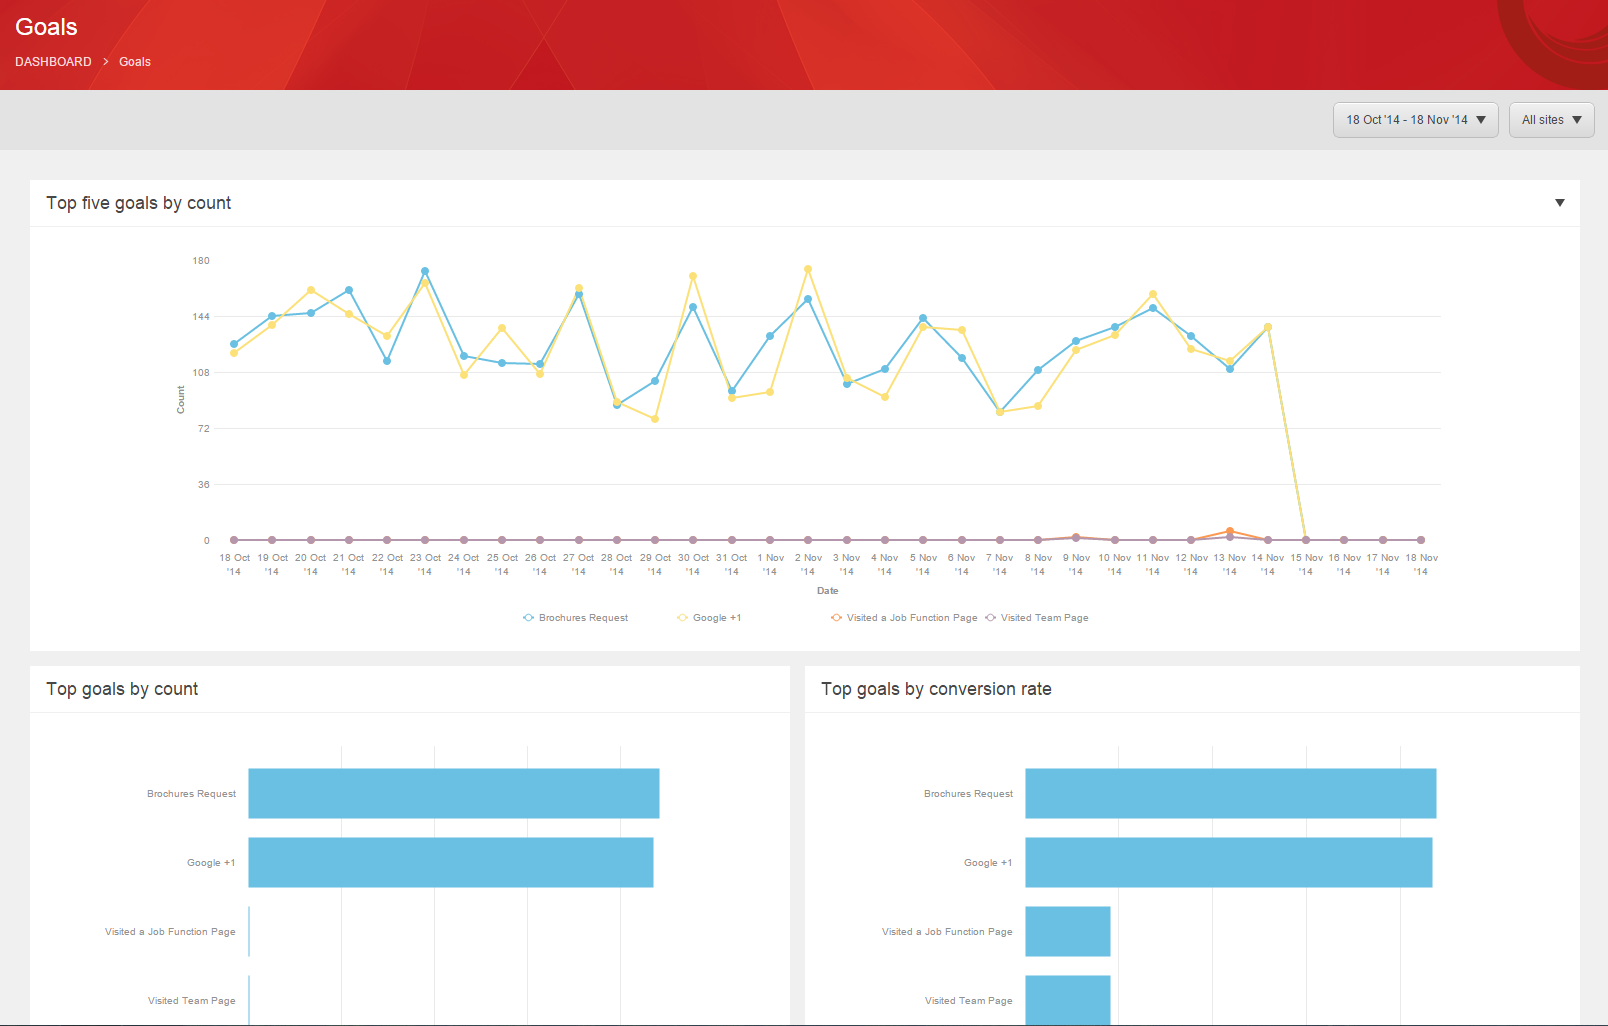 Sitecore experience analytics for monitoring goals